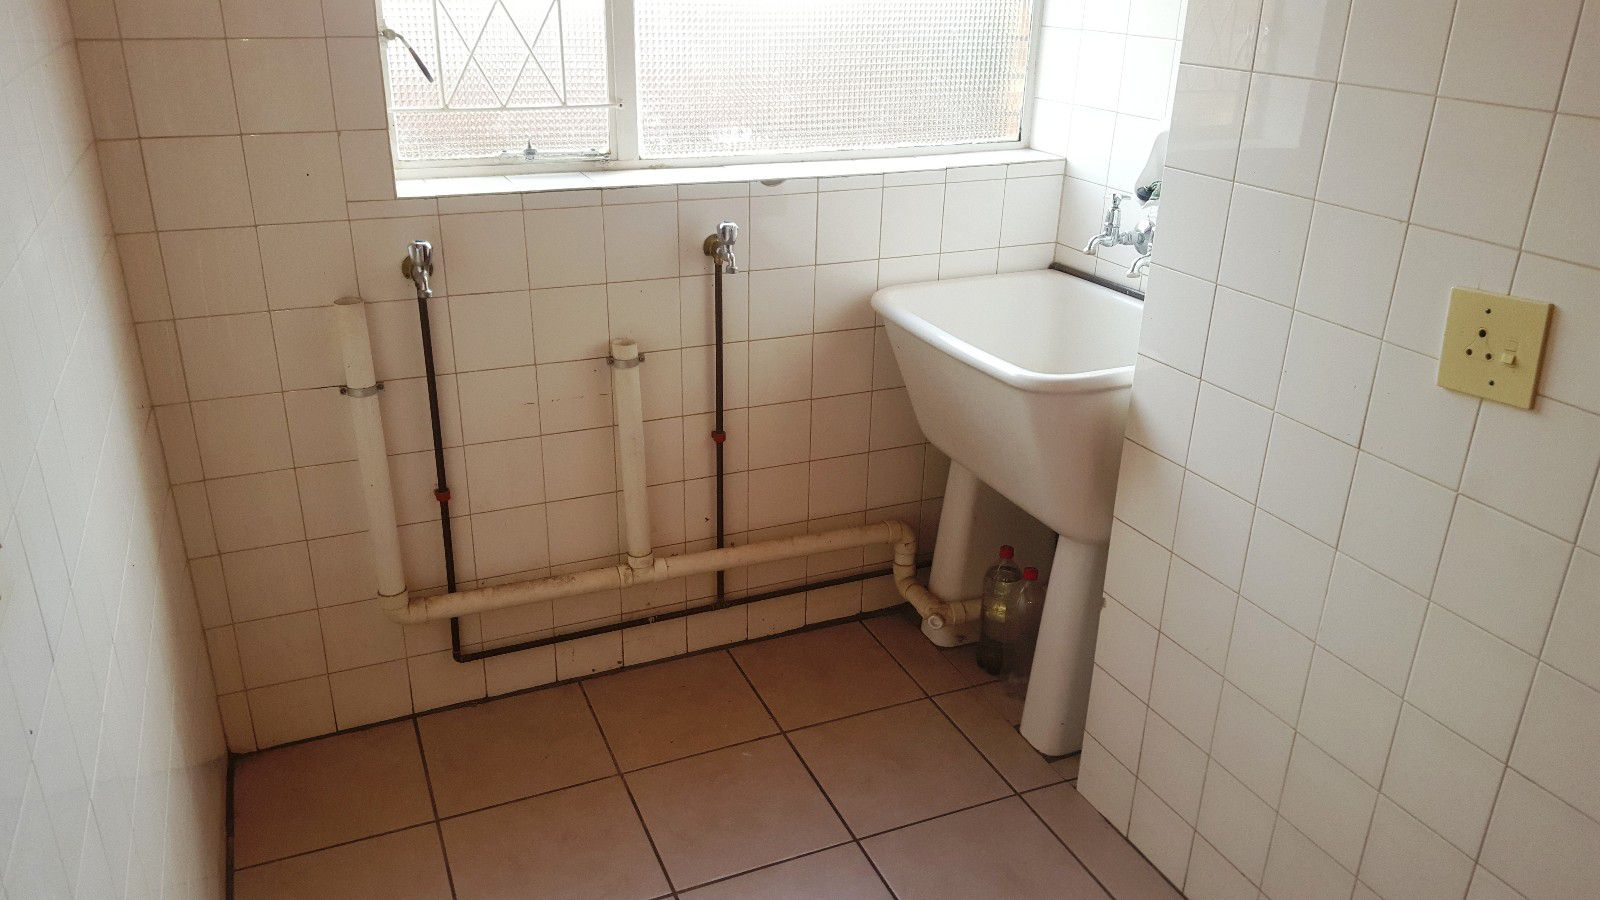 Potchefstroom Central property for sale. Ref No: 13449643. Picture no 23